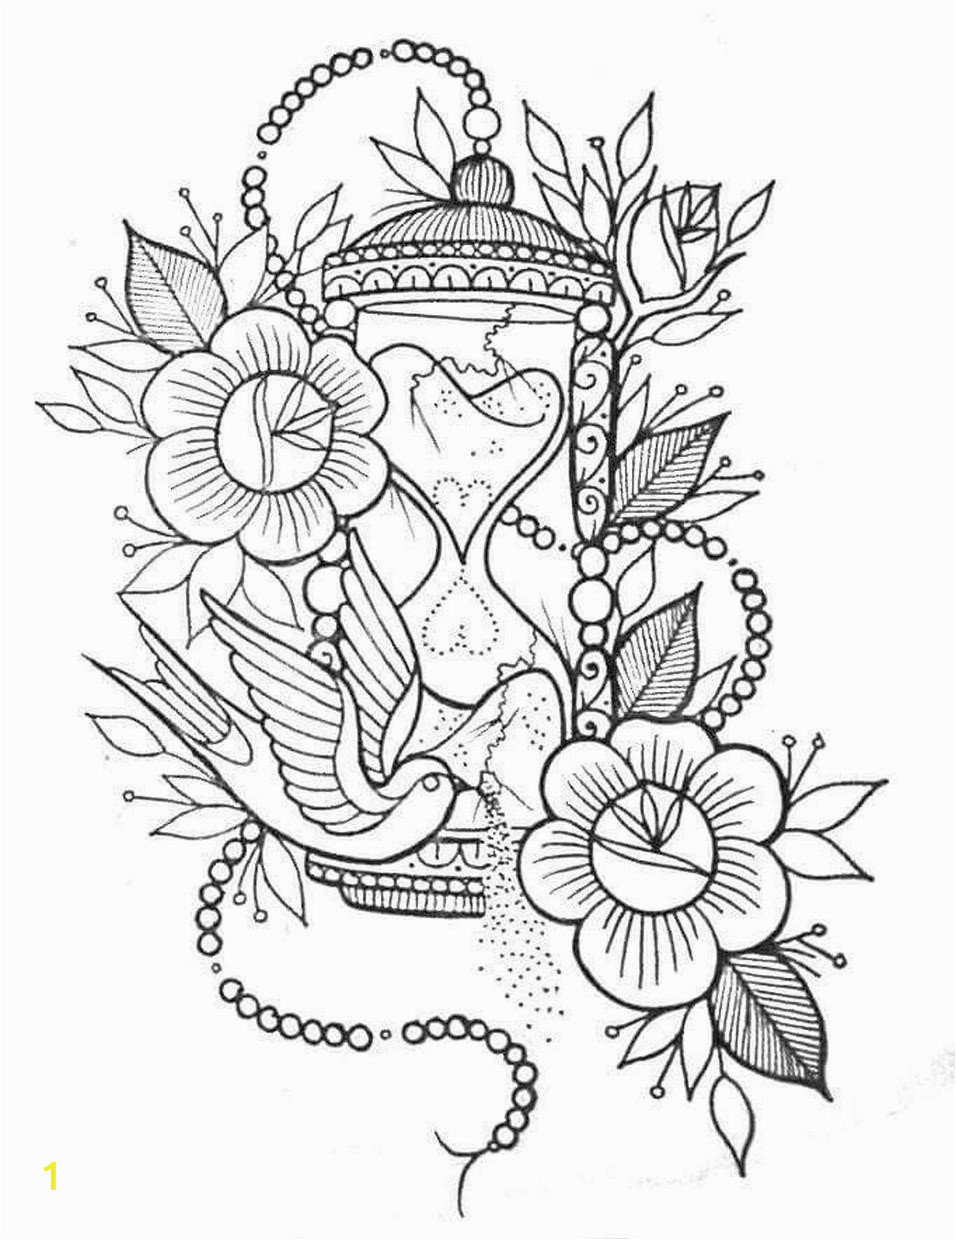 Free Online Coloring Pages for Adults Flowers Get This Adult Coloring Pages Patterns Flowers Free